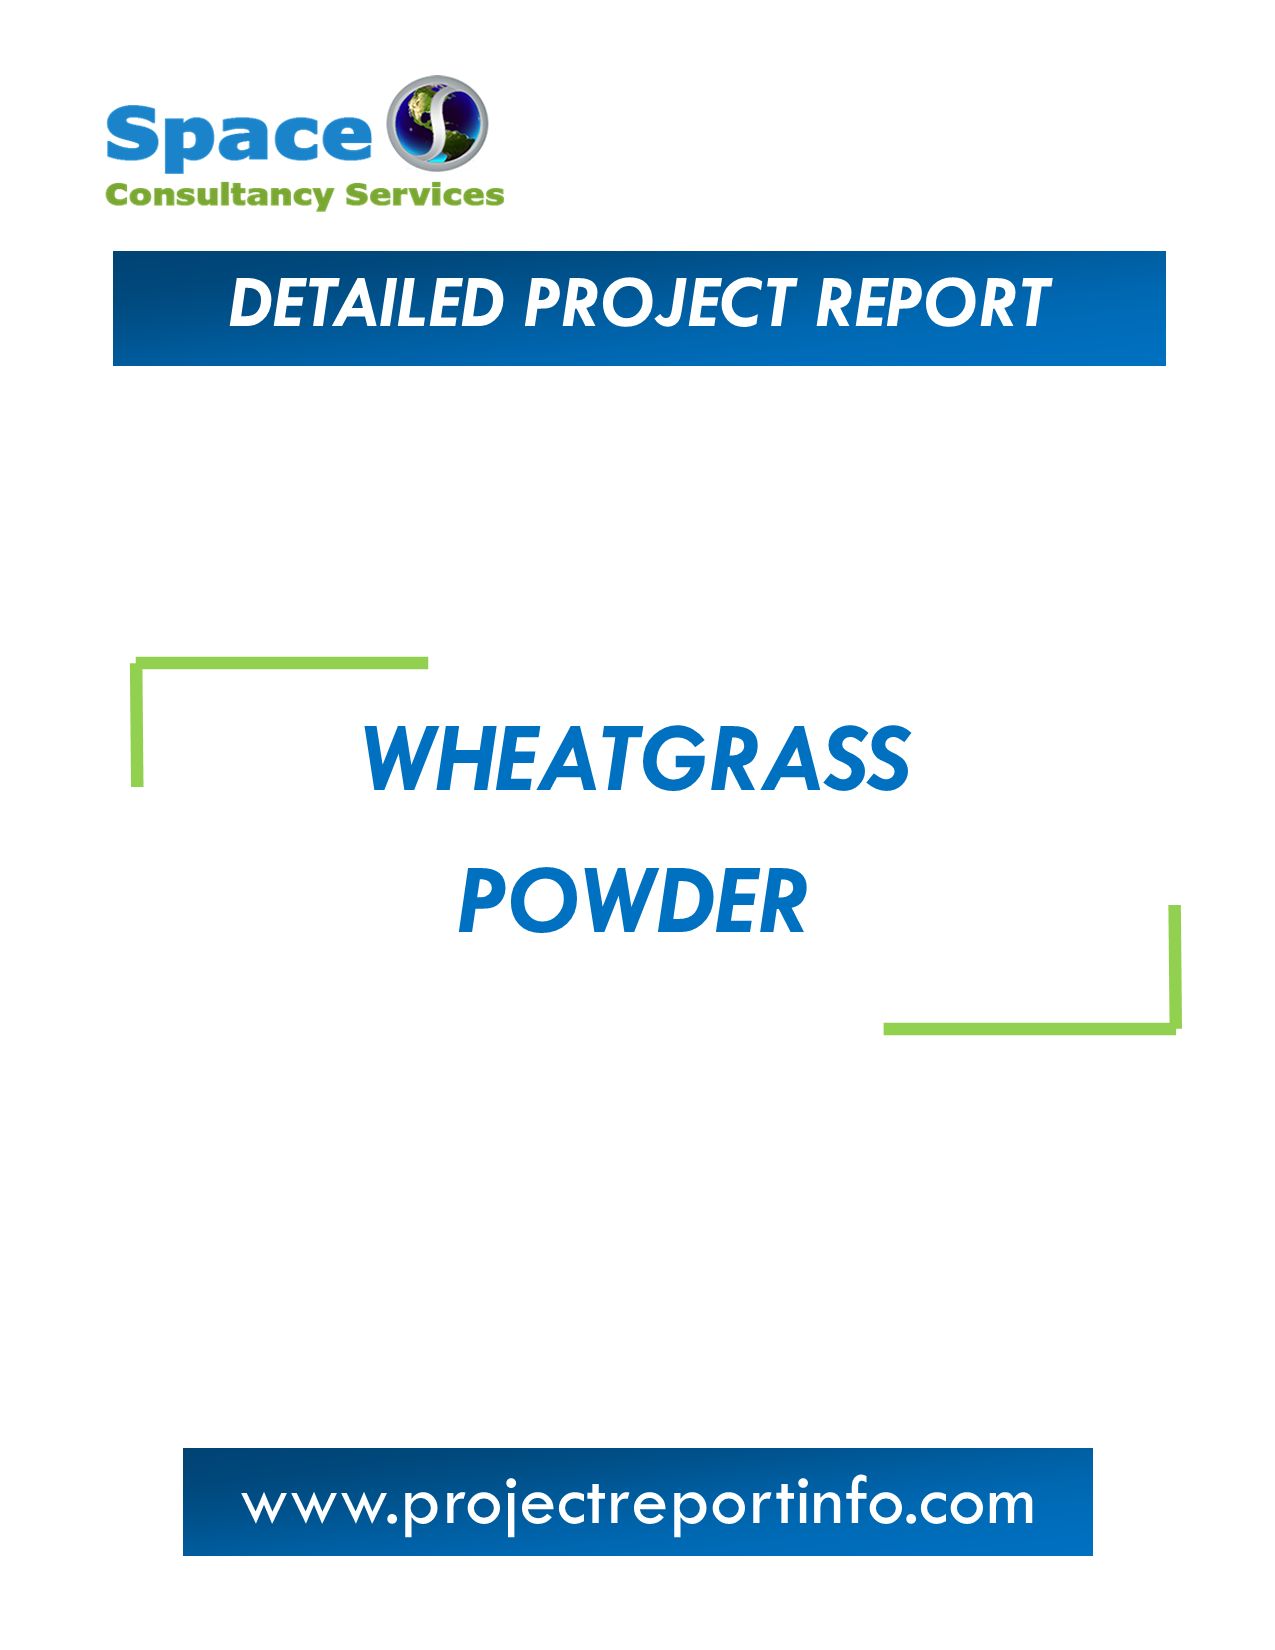 Project Report on Wheatgrass Powder Manufacturing